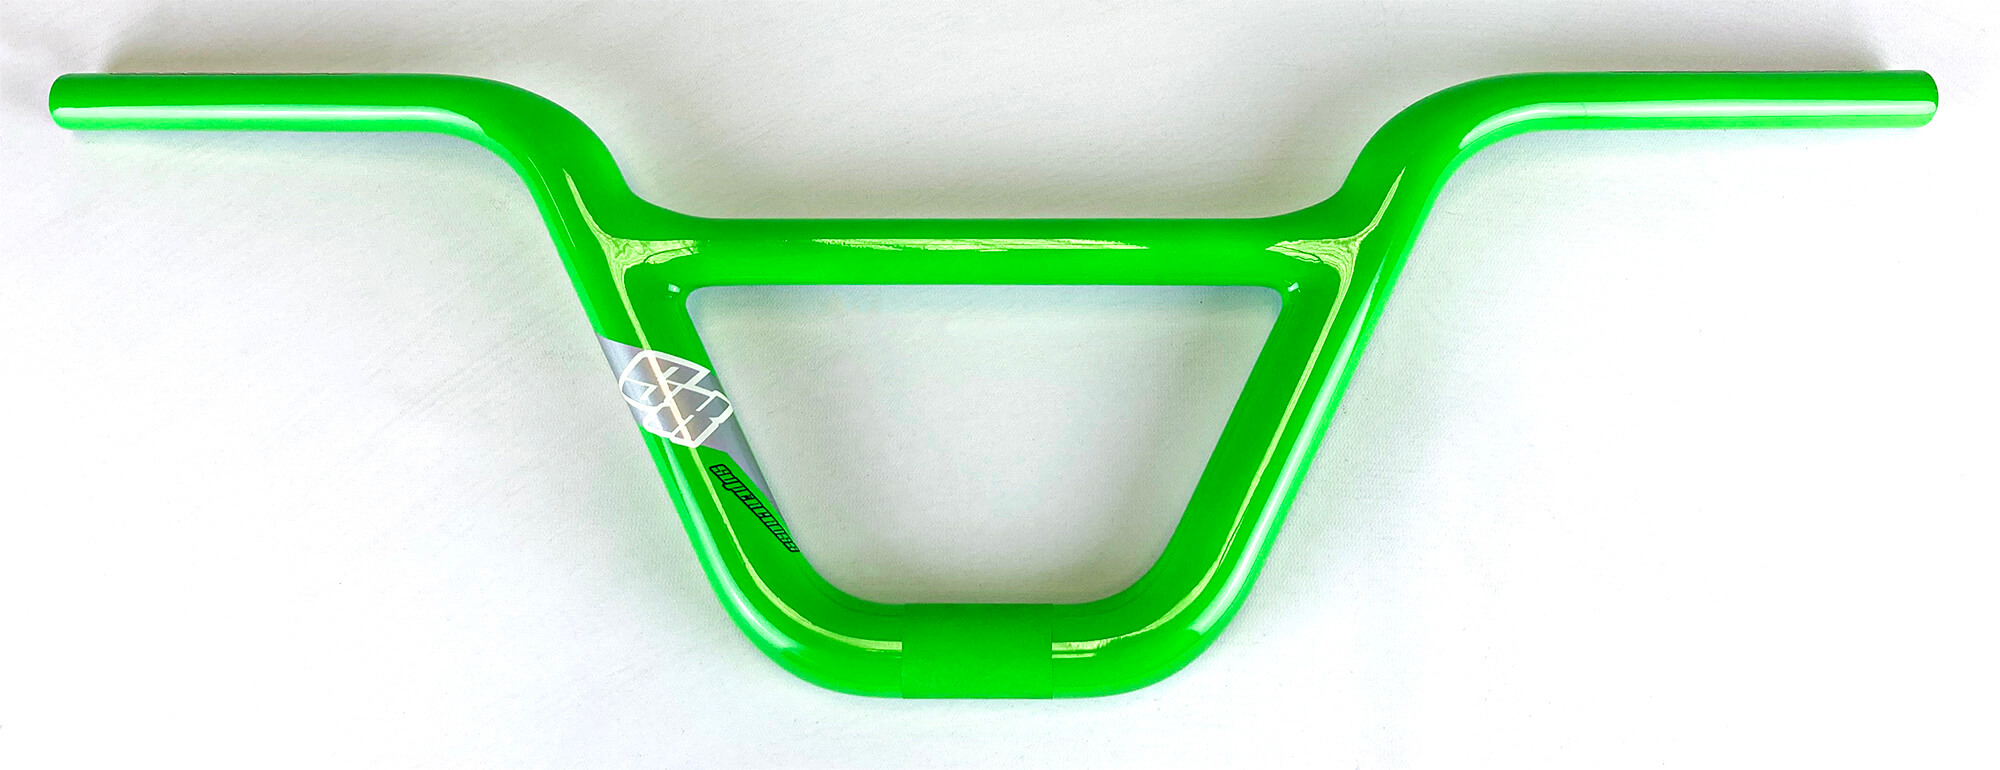 Supercross BLK Bars Green